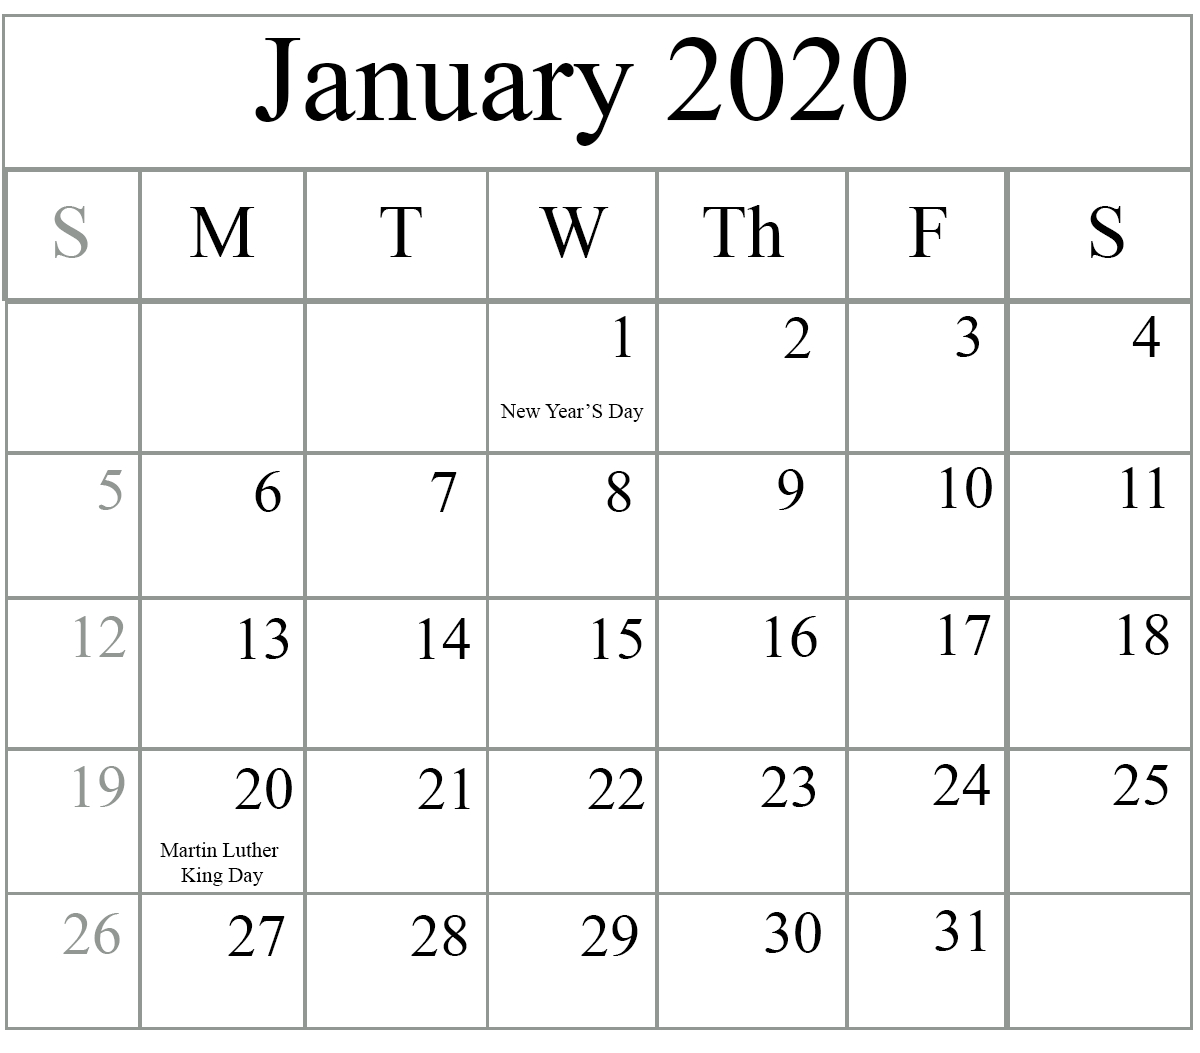 Free January 2020 Printable Calendar In Pdf, Excel & Word for Printable Calendar 2020 That You Can Type In